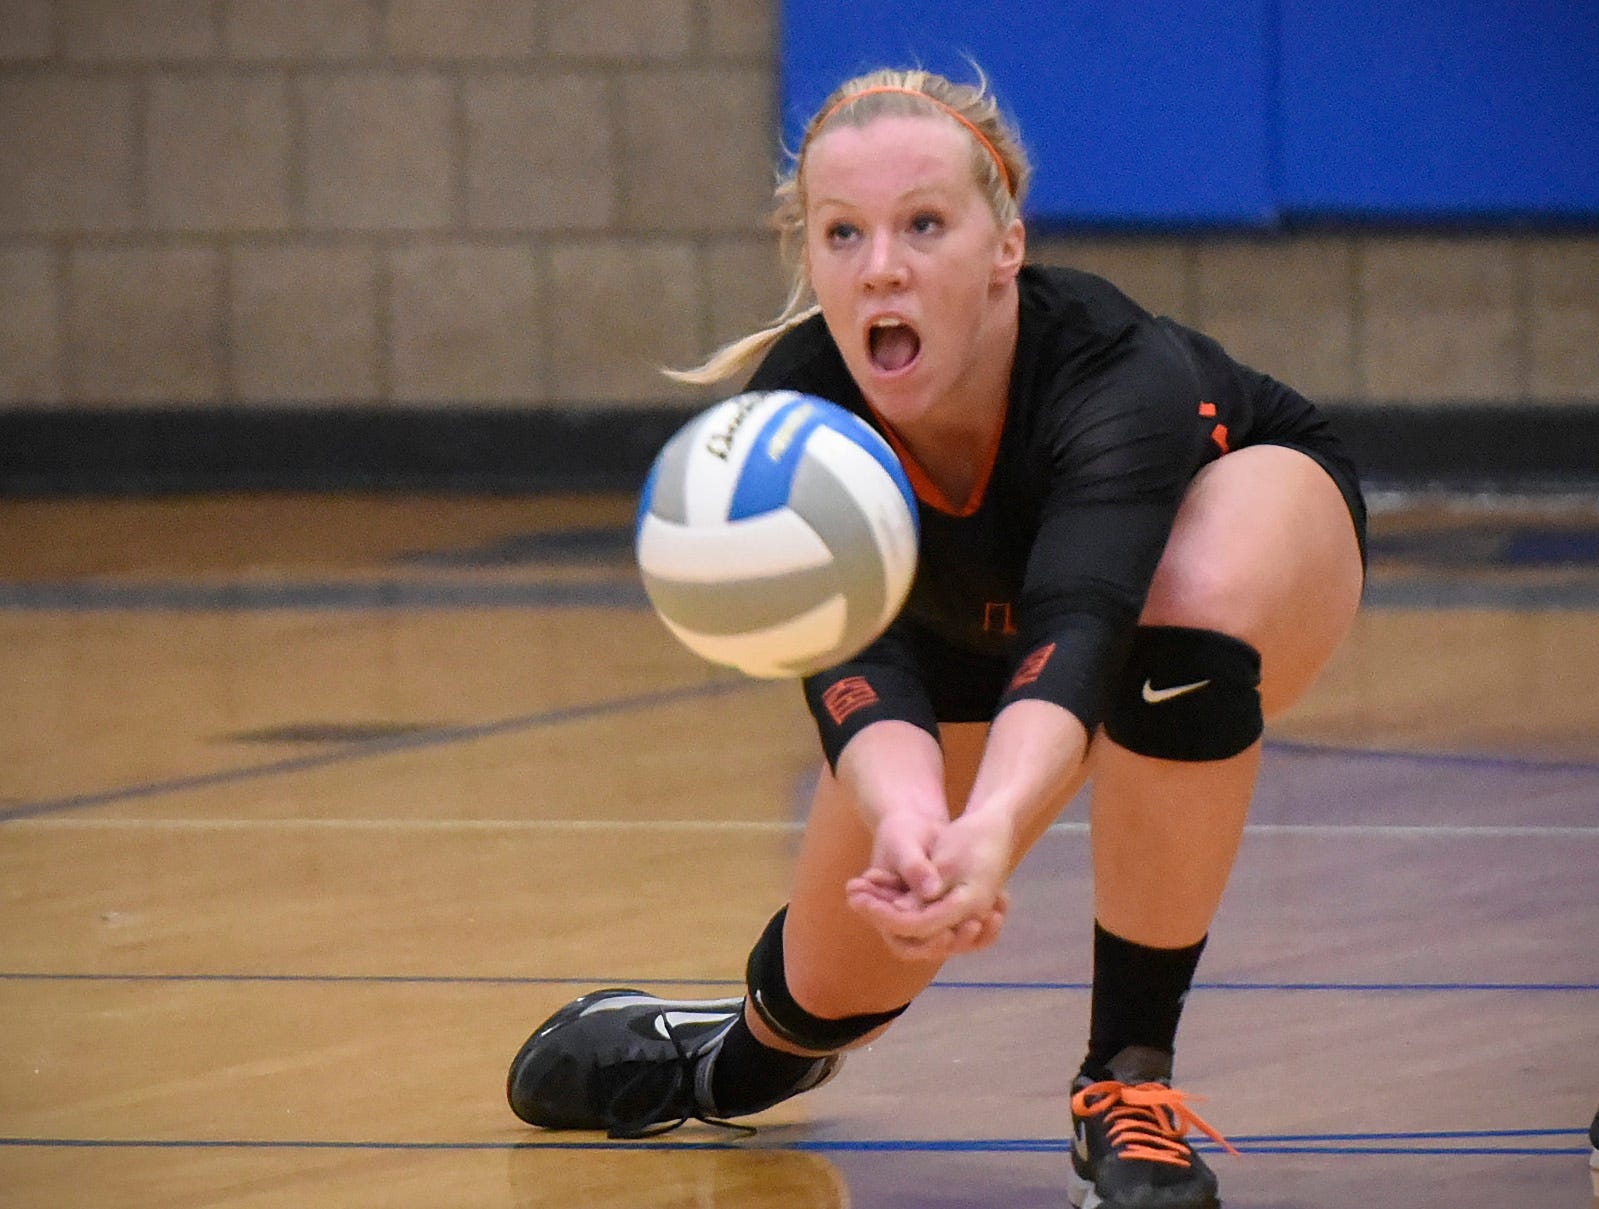 Tech's Rachel Honer dives to bump the ball up against Sartell during the second game Tuesday, Sept. 11, in Sartell